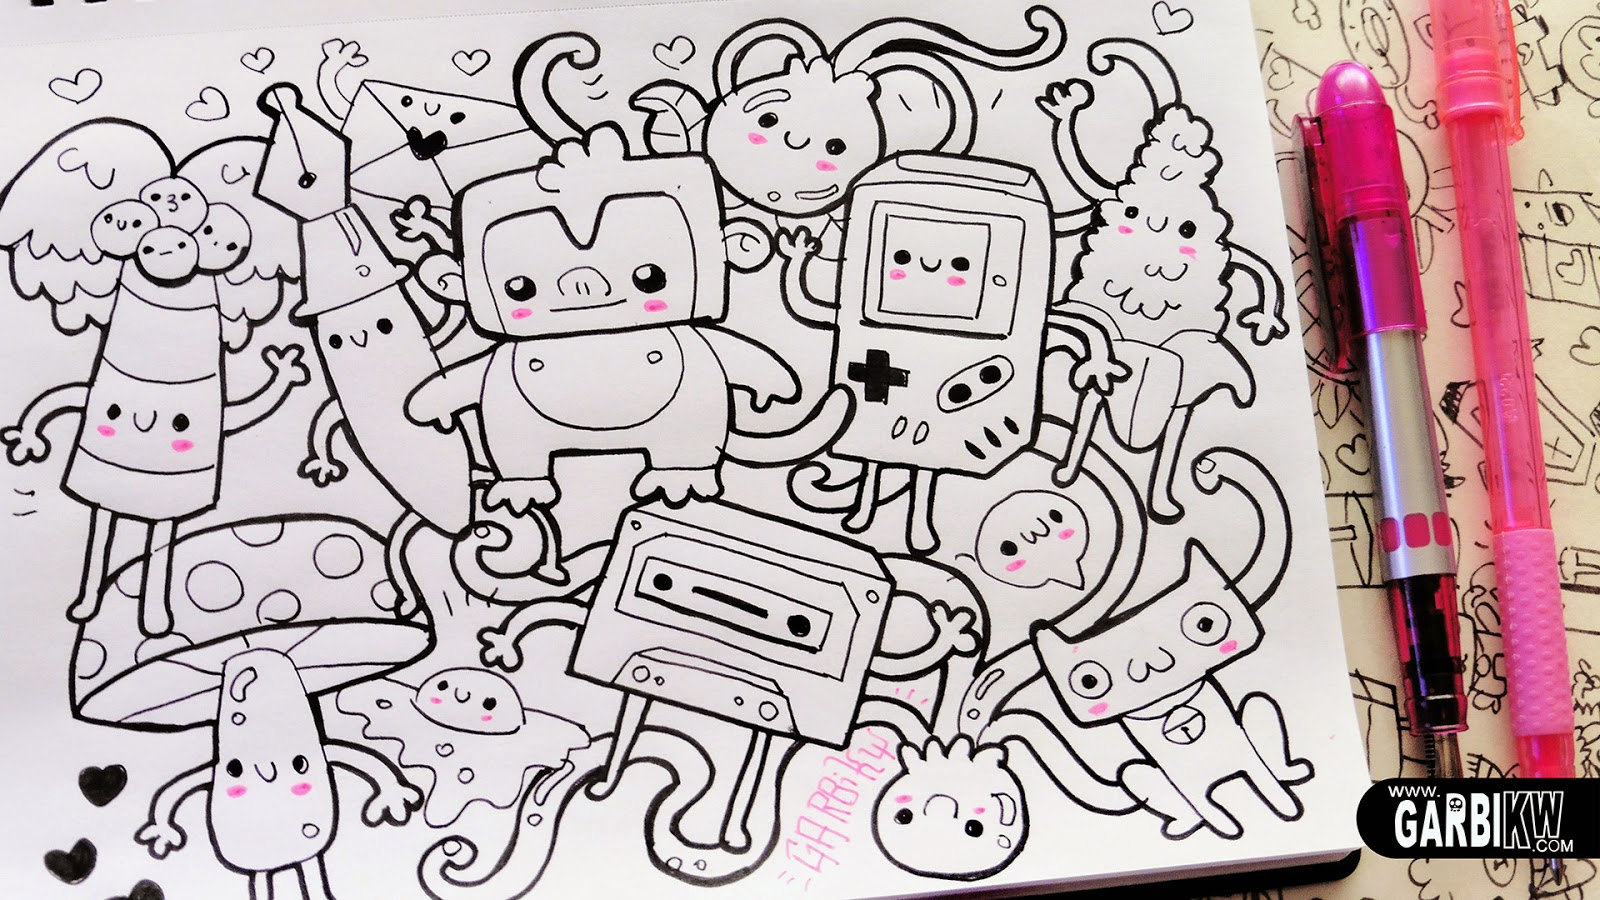 follow the monkey hello doodles easy and kawaii drawings by